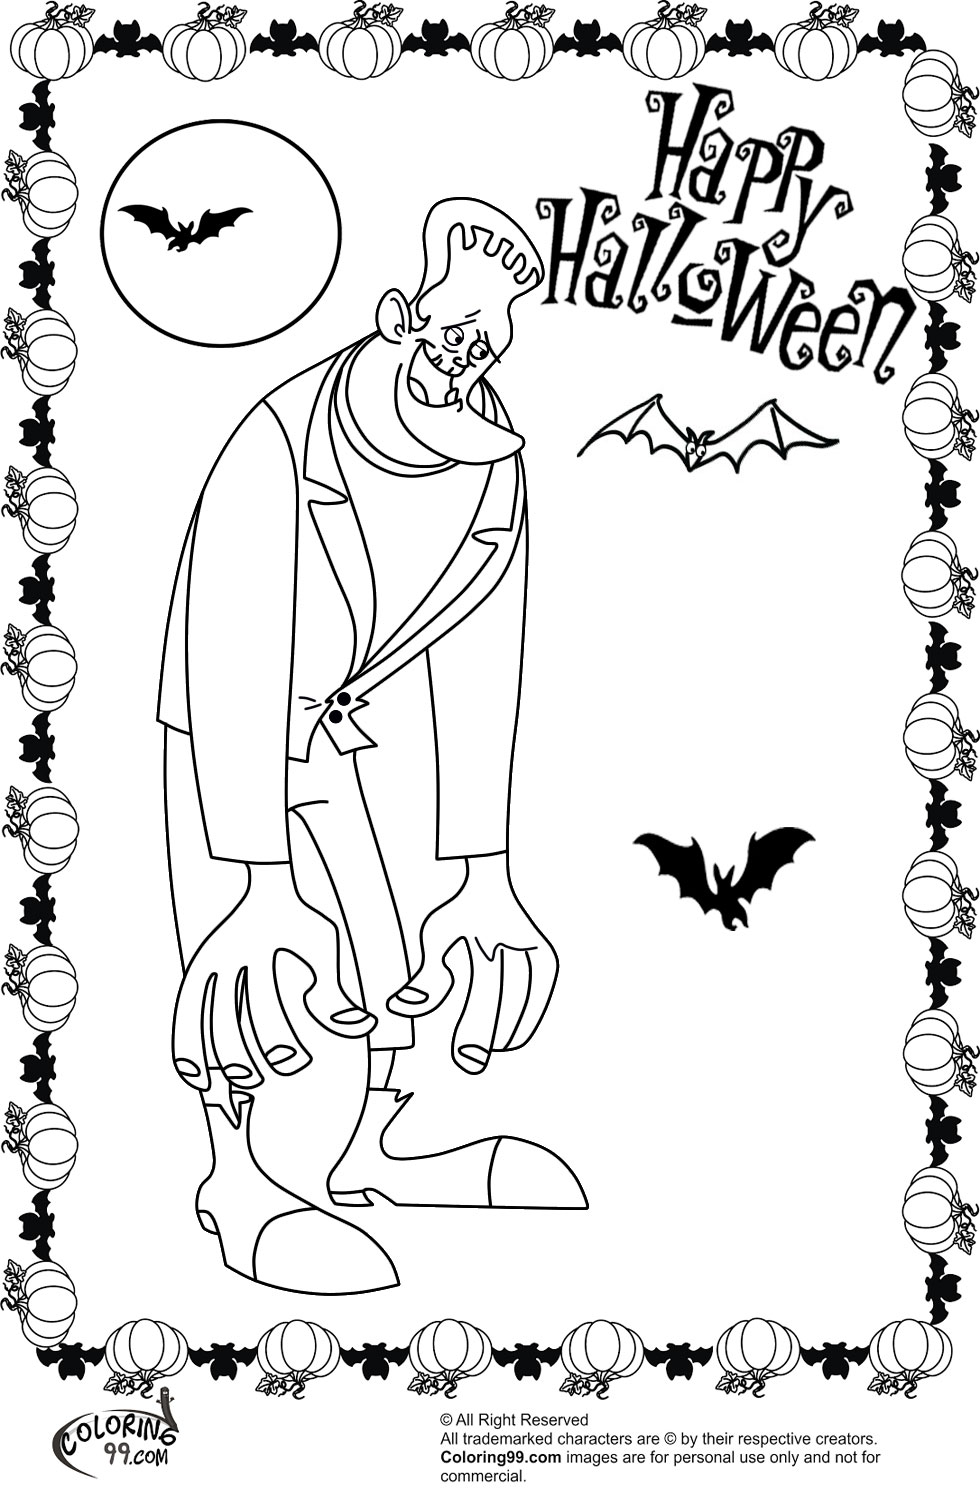 frankenstien coloring pages - photo#25